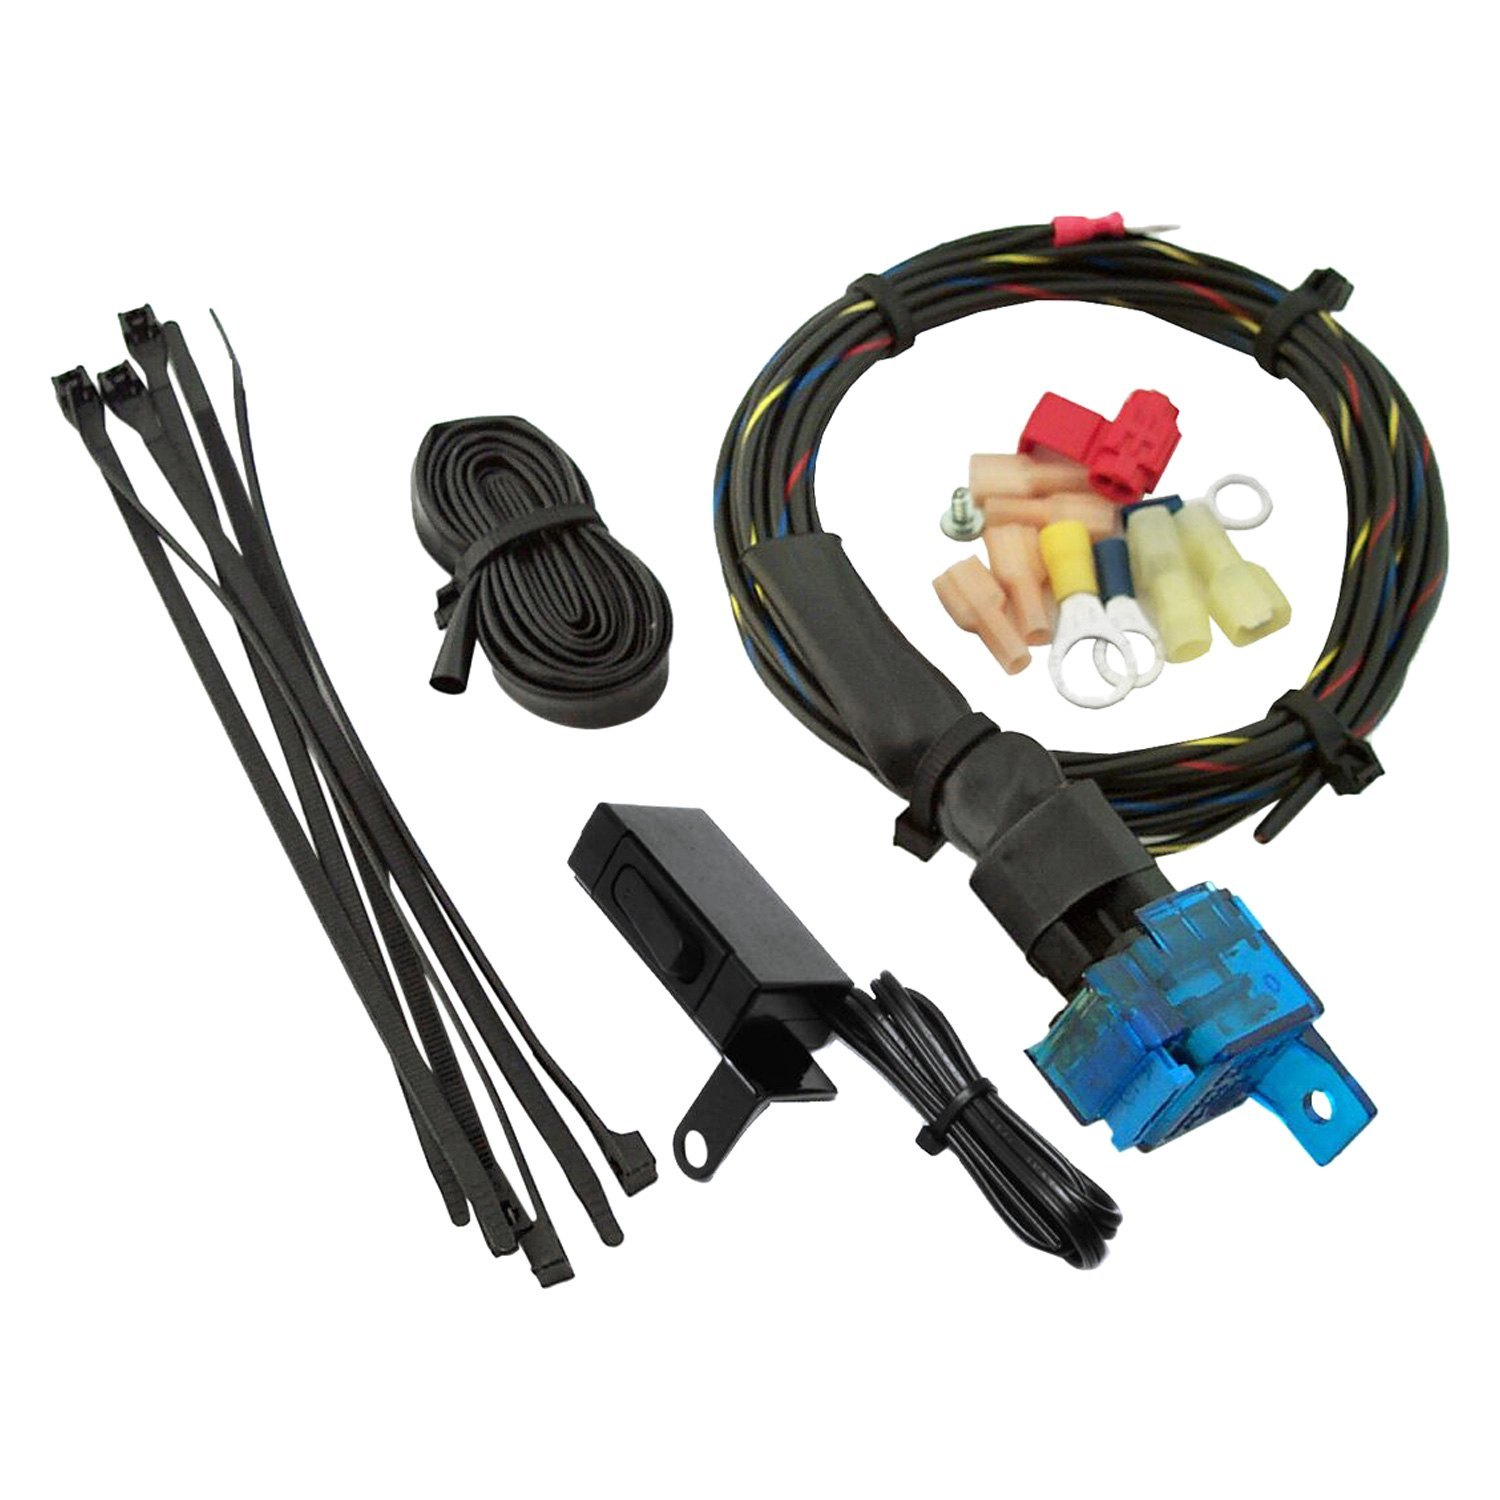 Handlebar Wiring Harness With Switches on racing switches, motor switches, ignition switches, lever switches, battery switches, headlight switches, hub switches, brake switches,